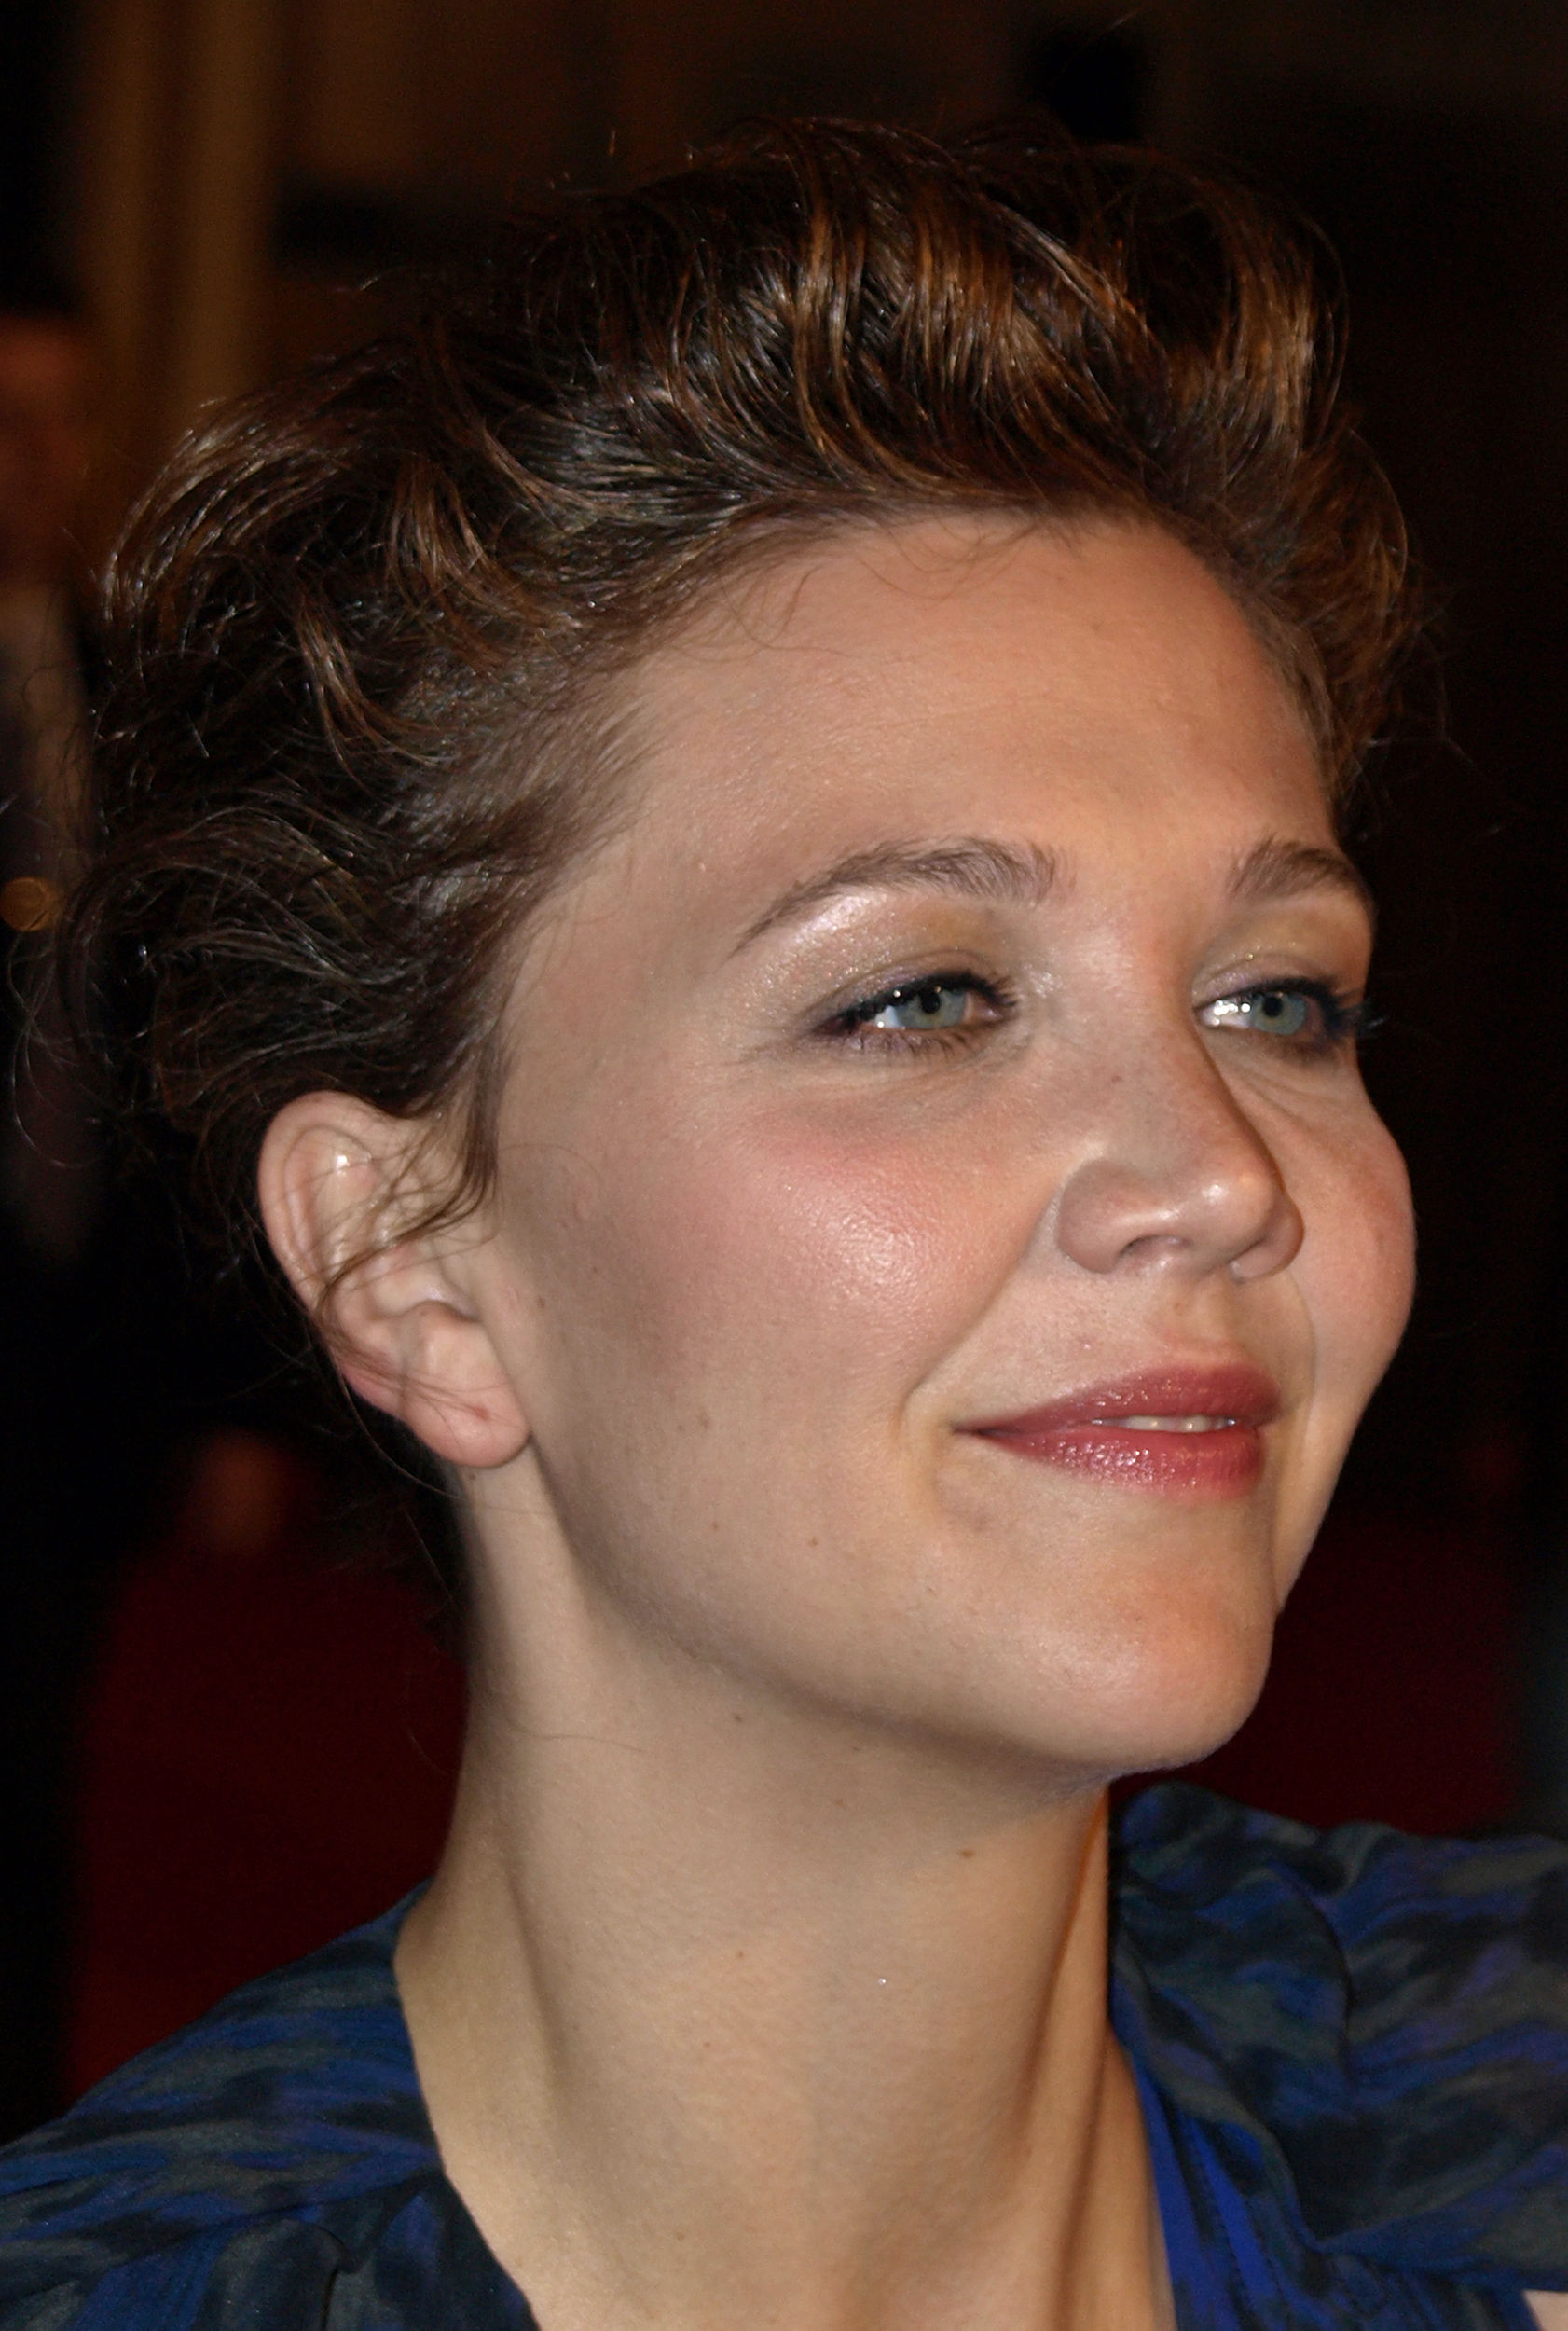 file:maggie gyllenhaal - 002.jpg - wikipedia, the free encyclopedia